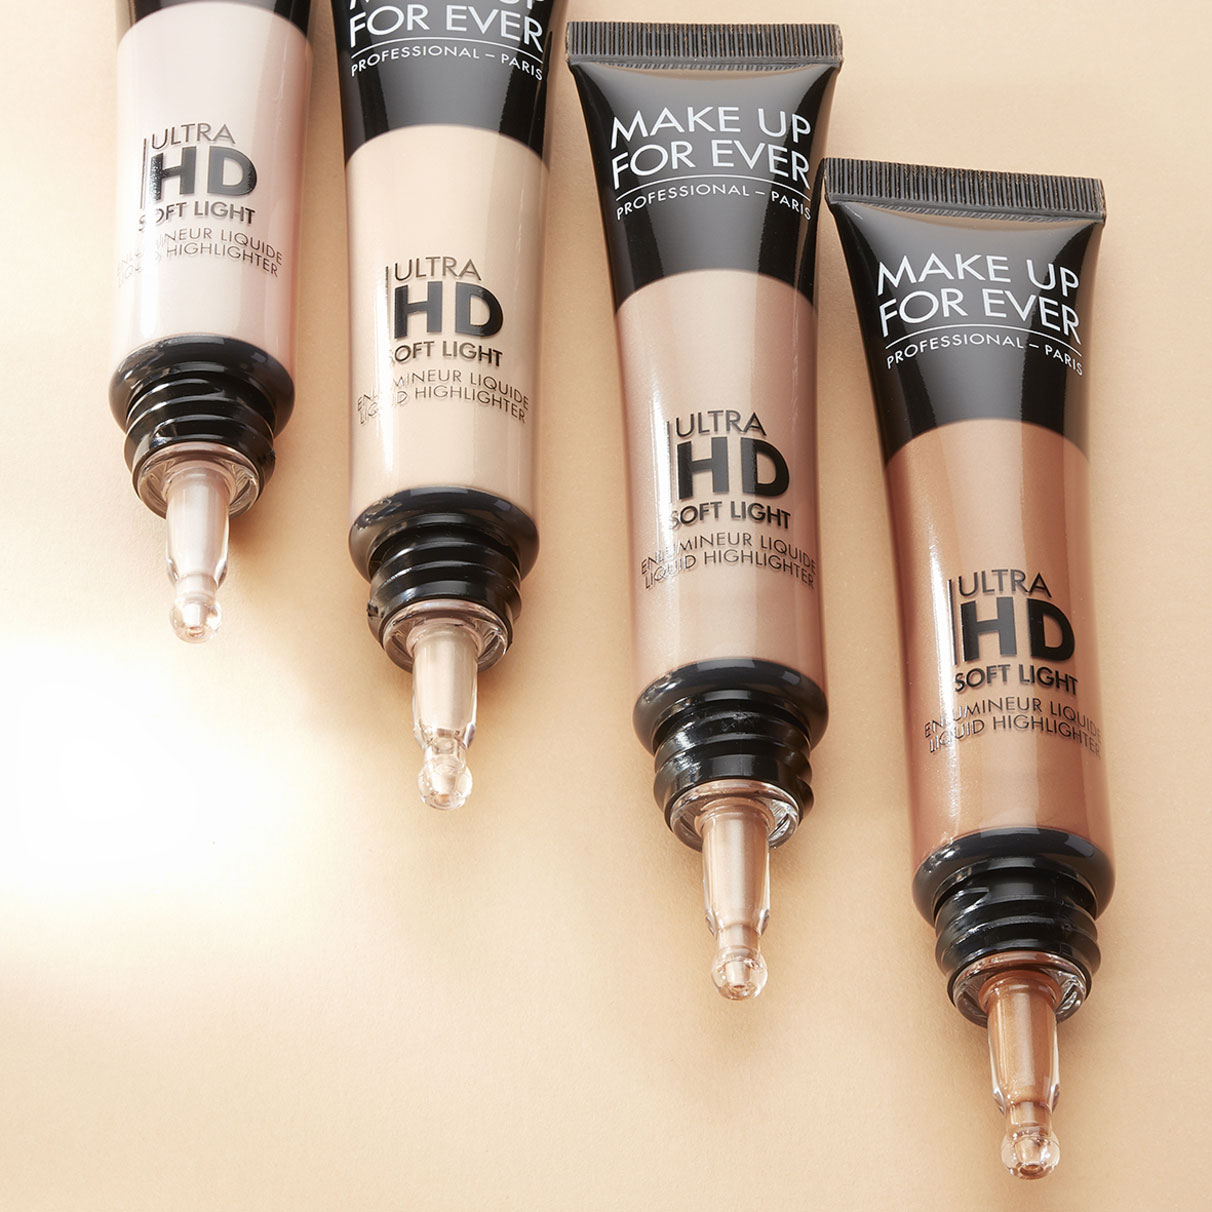 Make-Up-For-Ever-Ultra-HD-Soft-Light.jpg